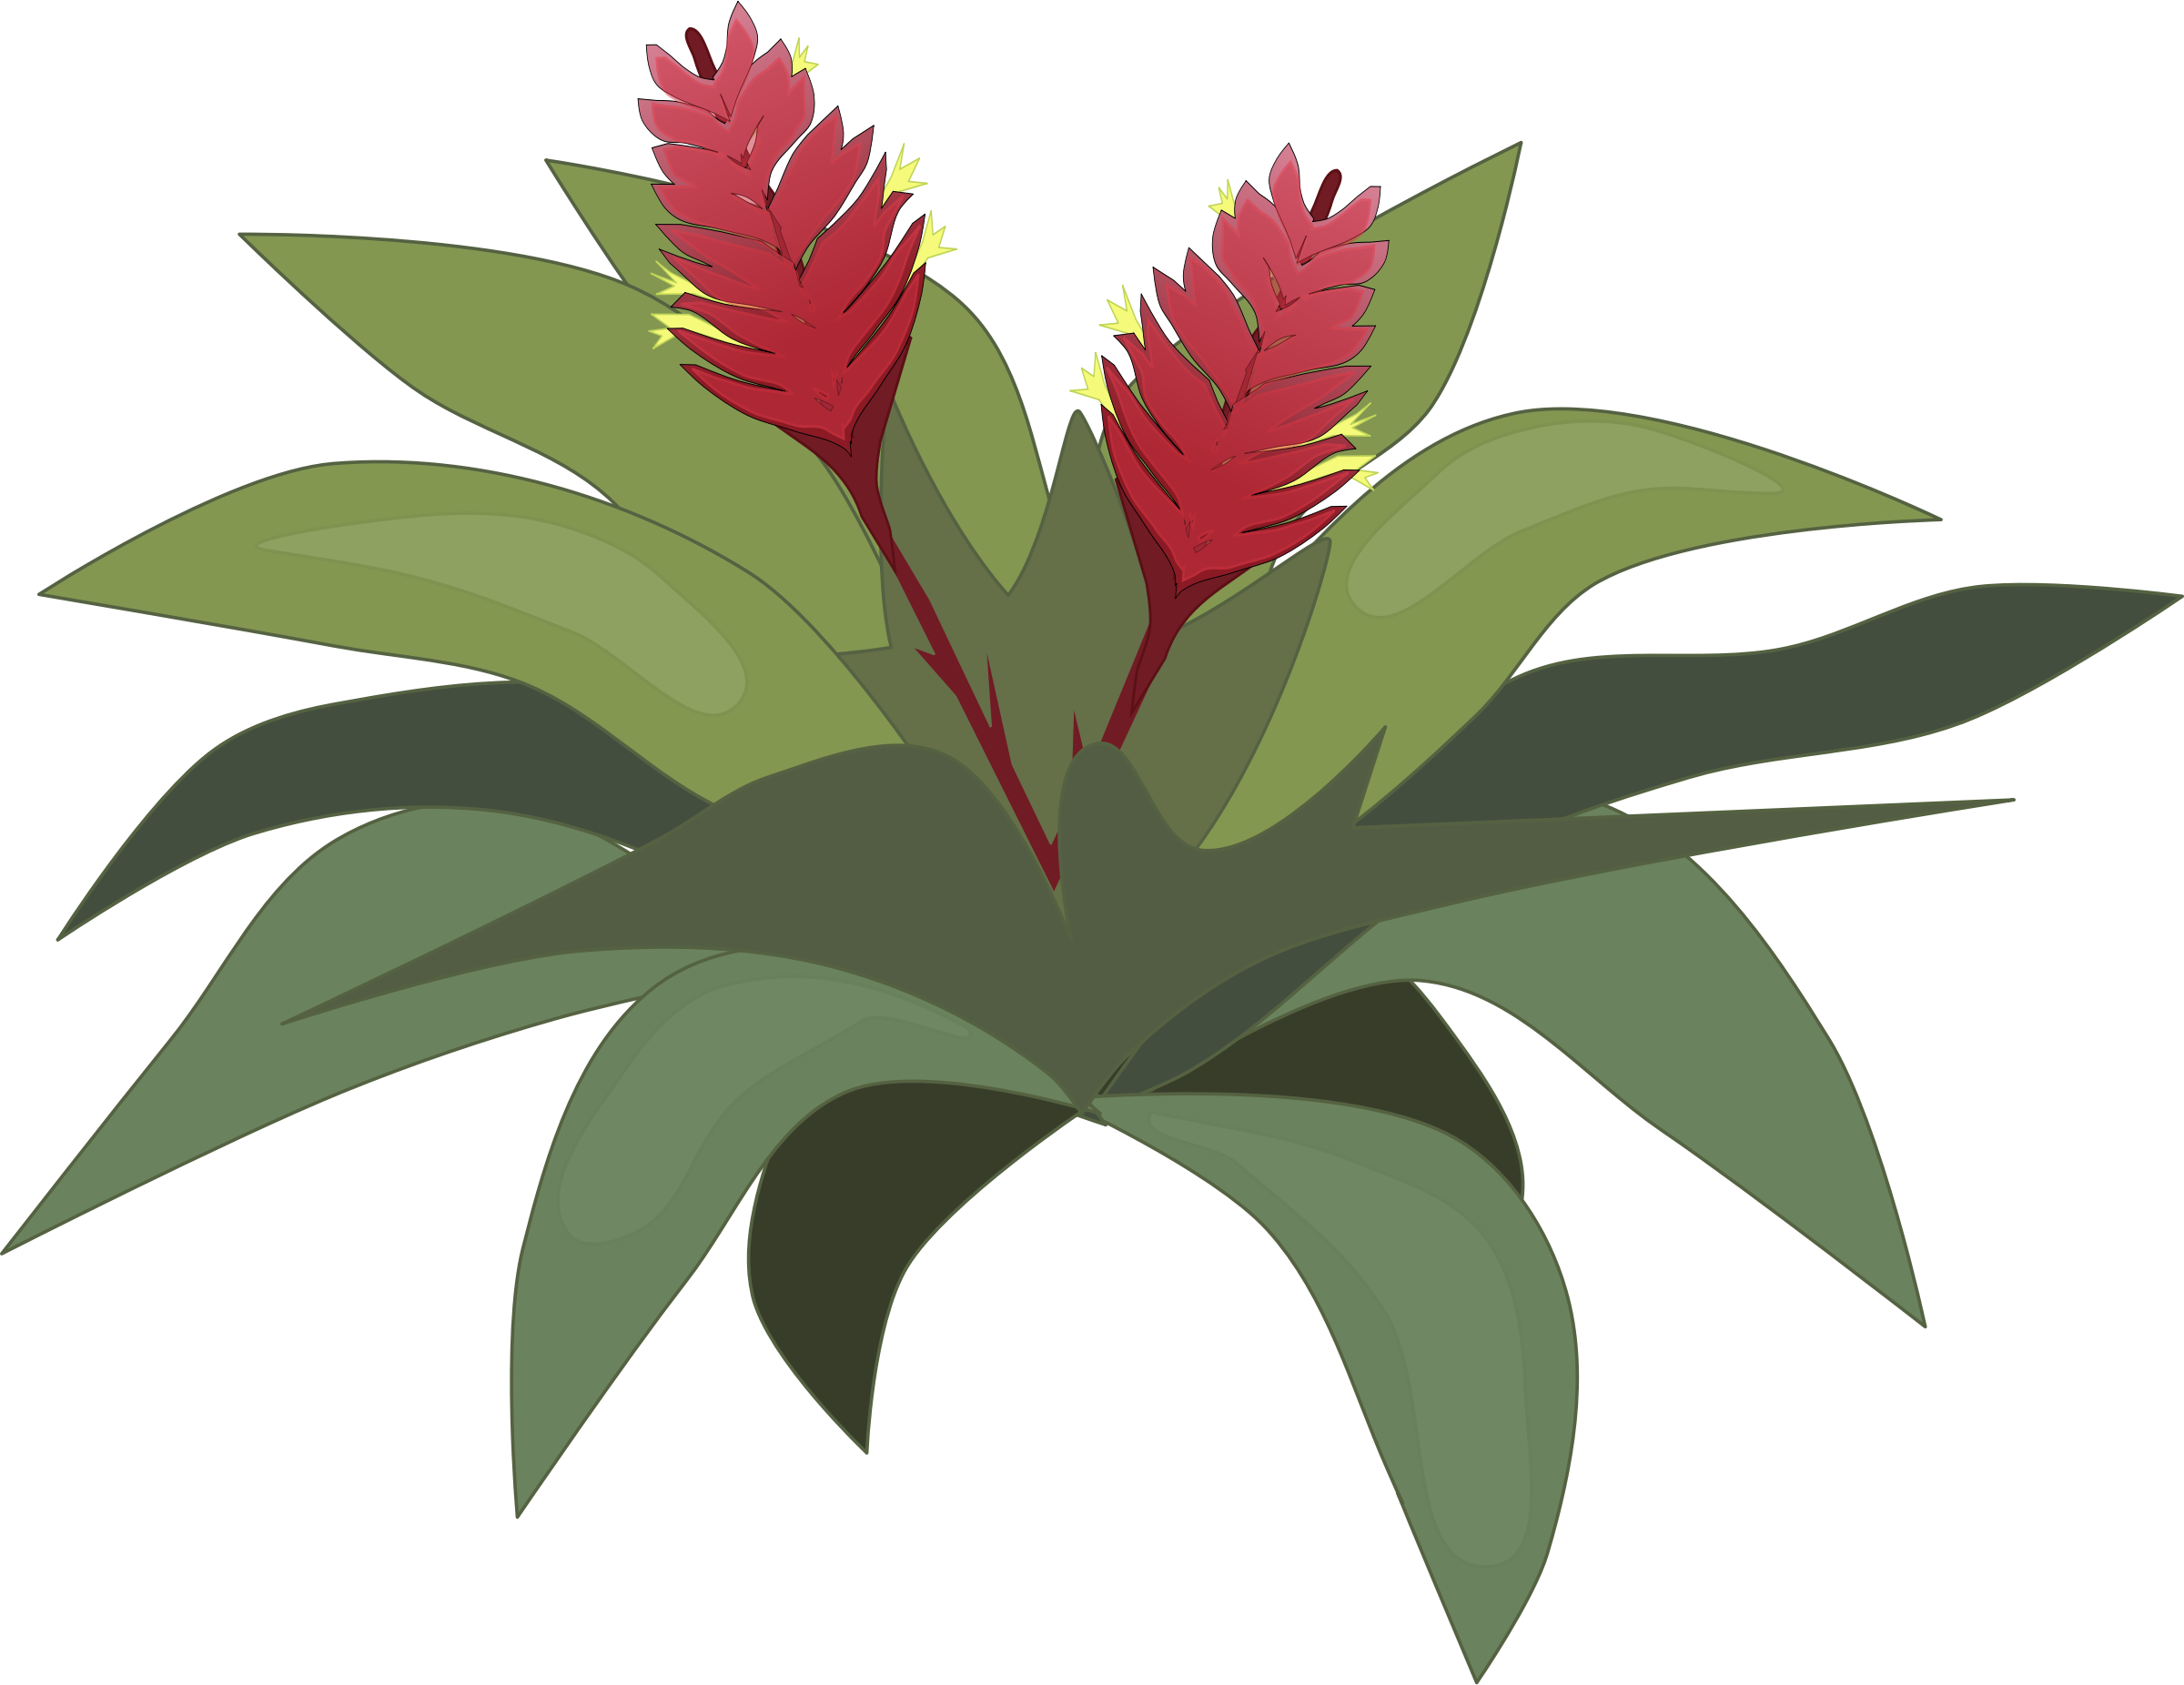 Bromelia clipart #10, Download drawings